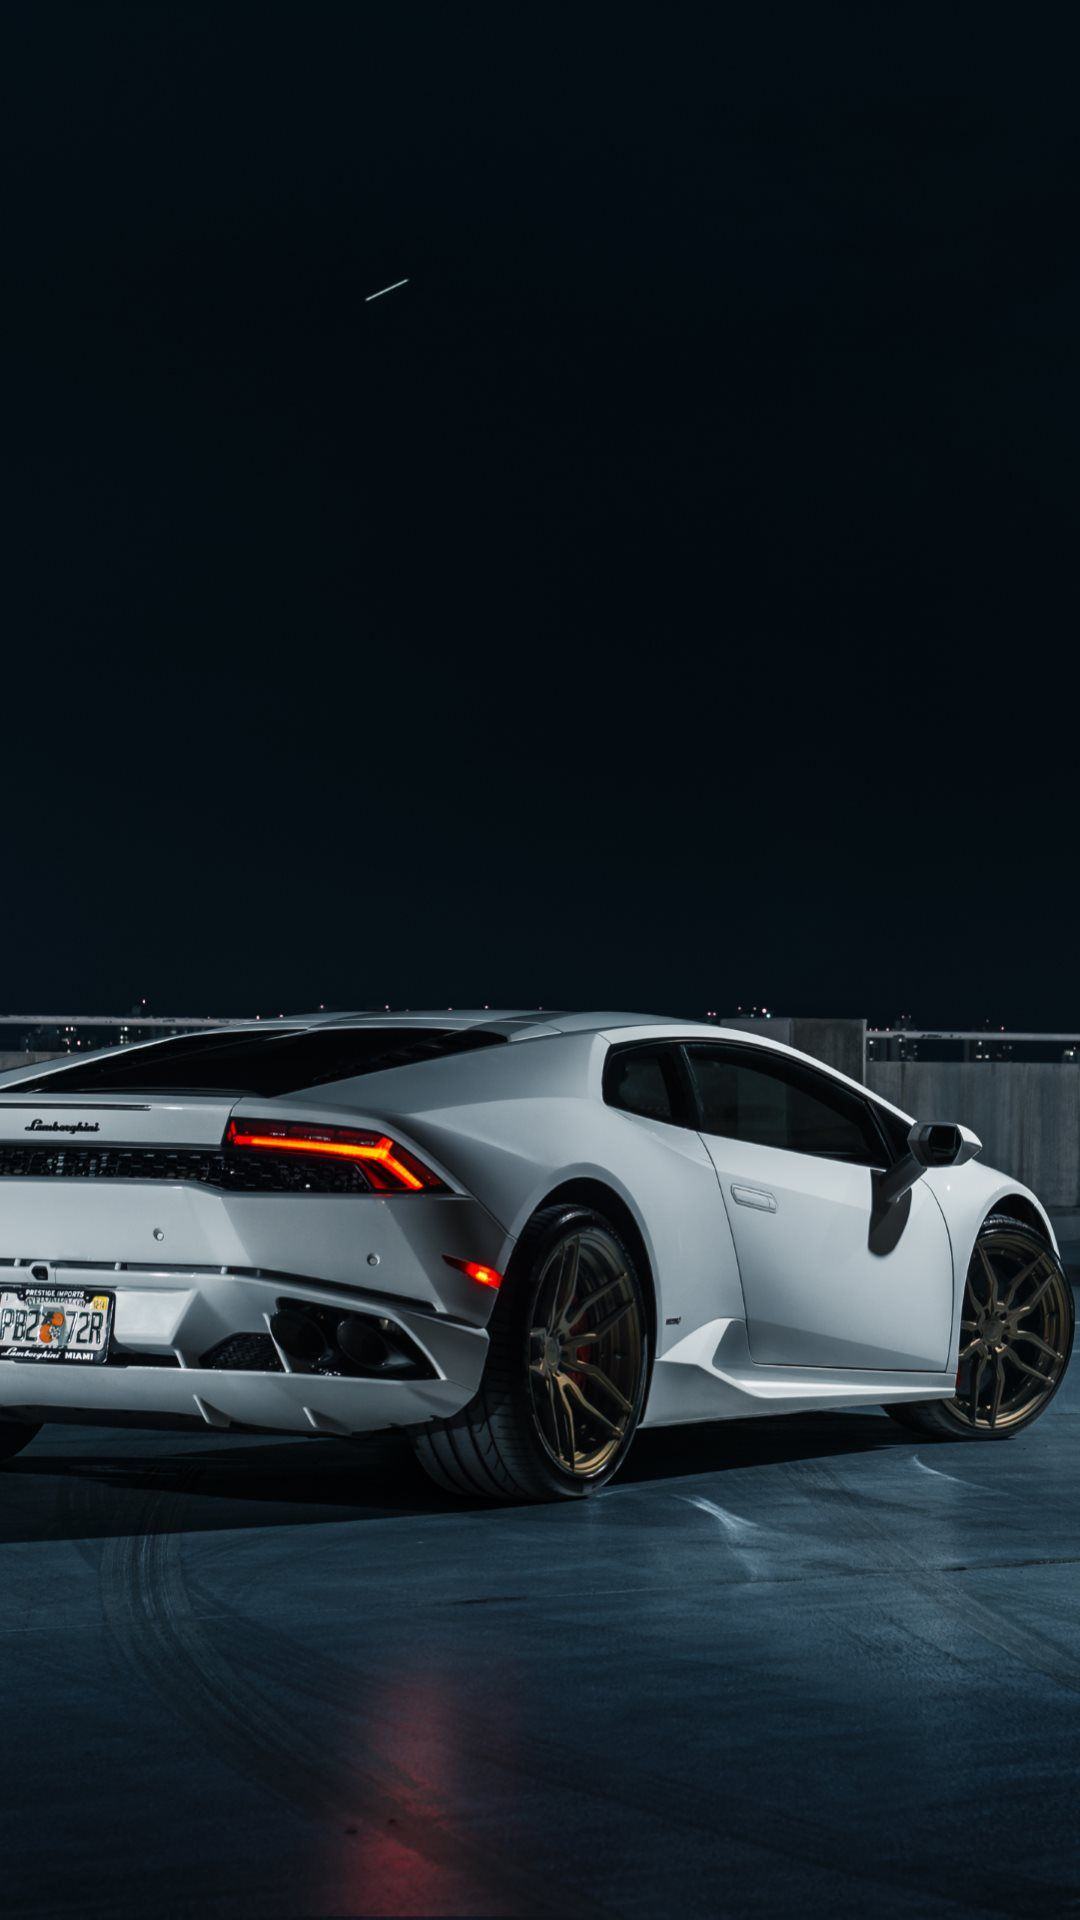 Lamborghini huracan wallpapers art wallpapers pinterest